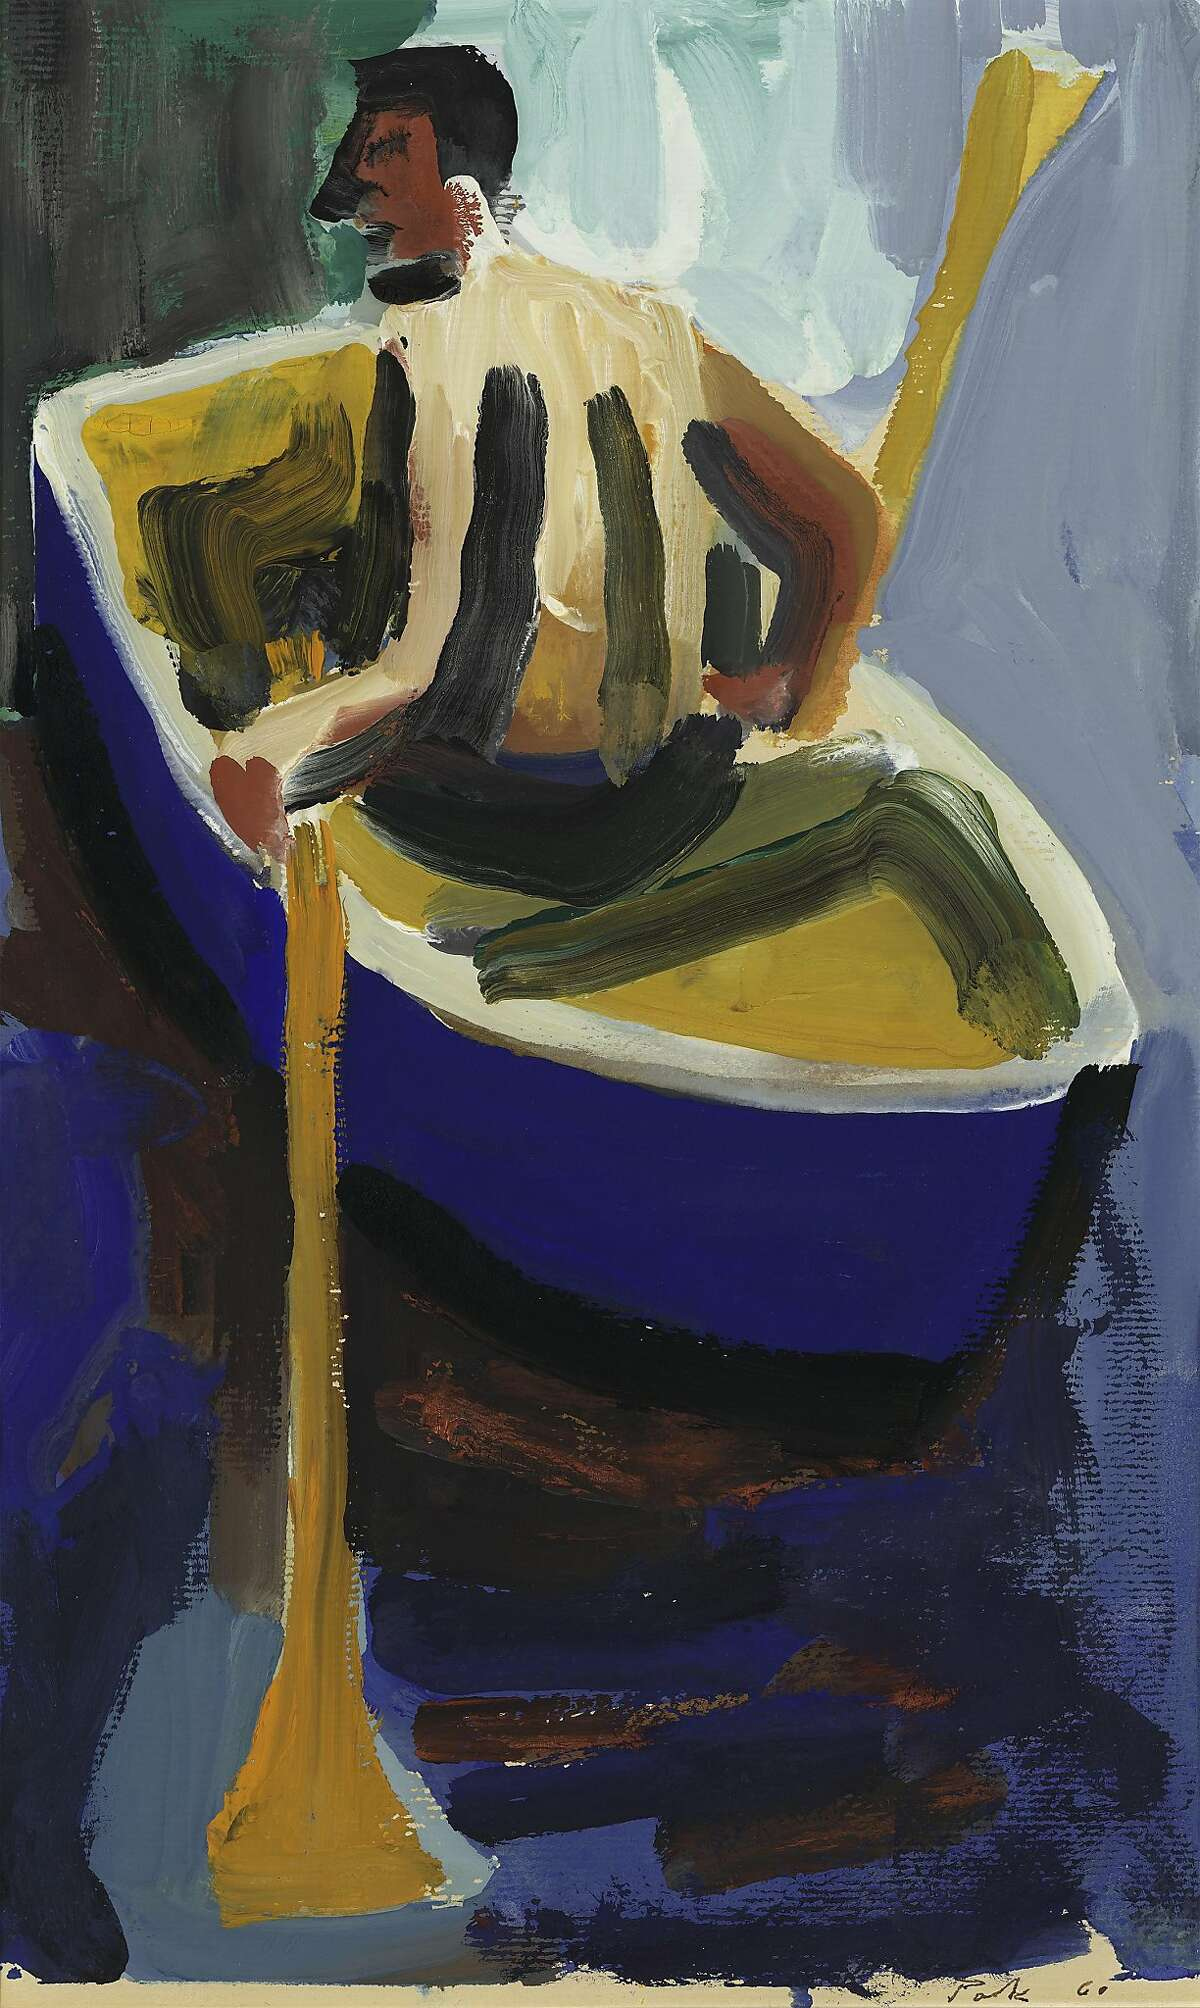 """David Park's 1960 gouache on paper work """"Man in Rowboat"""" is on display in """"David Park: Personal Perspectives"""" through May 22 at Richmond Art Center."""